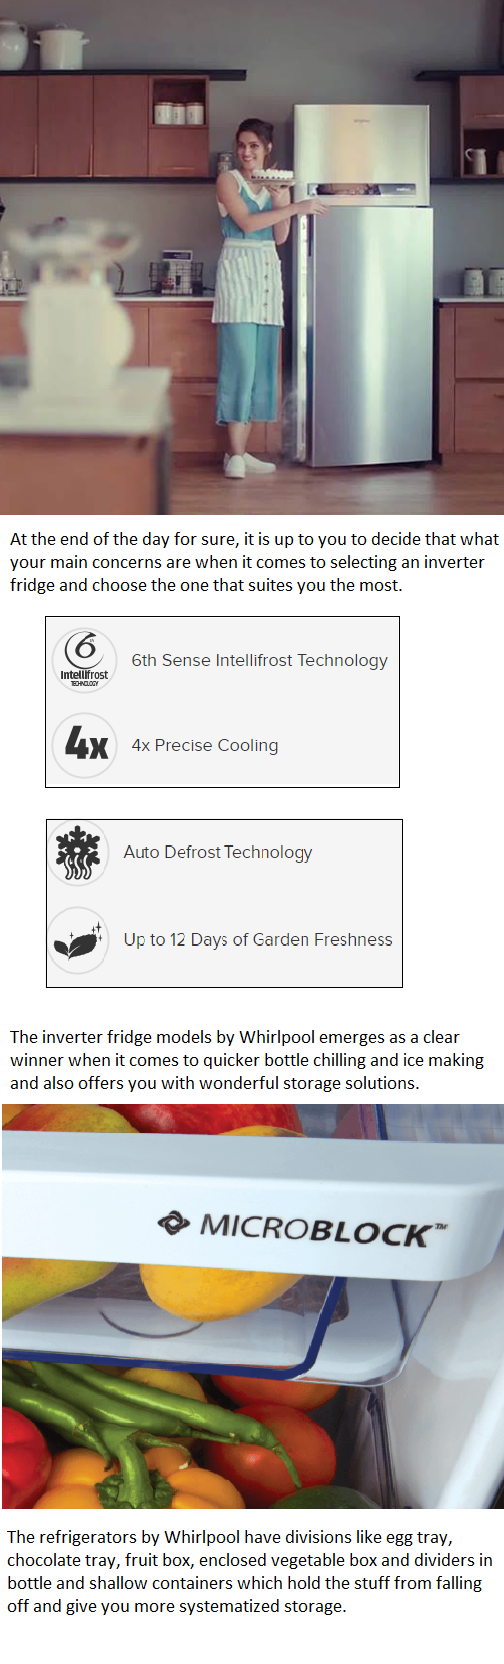 The Inverter Fridge Models By Whirlpool Emerges As A Clear Winner